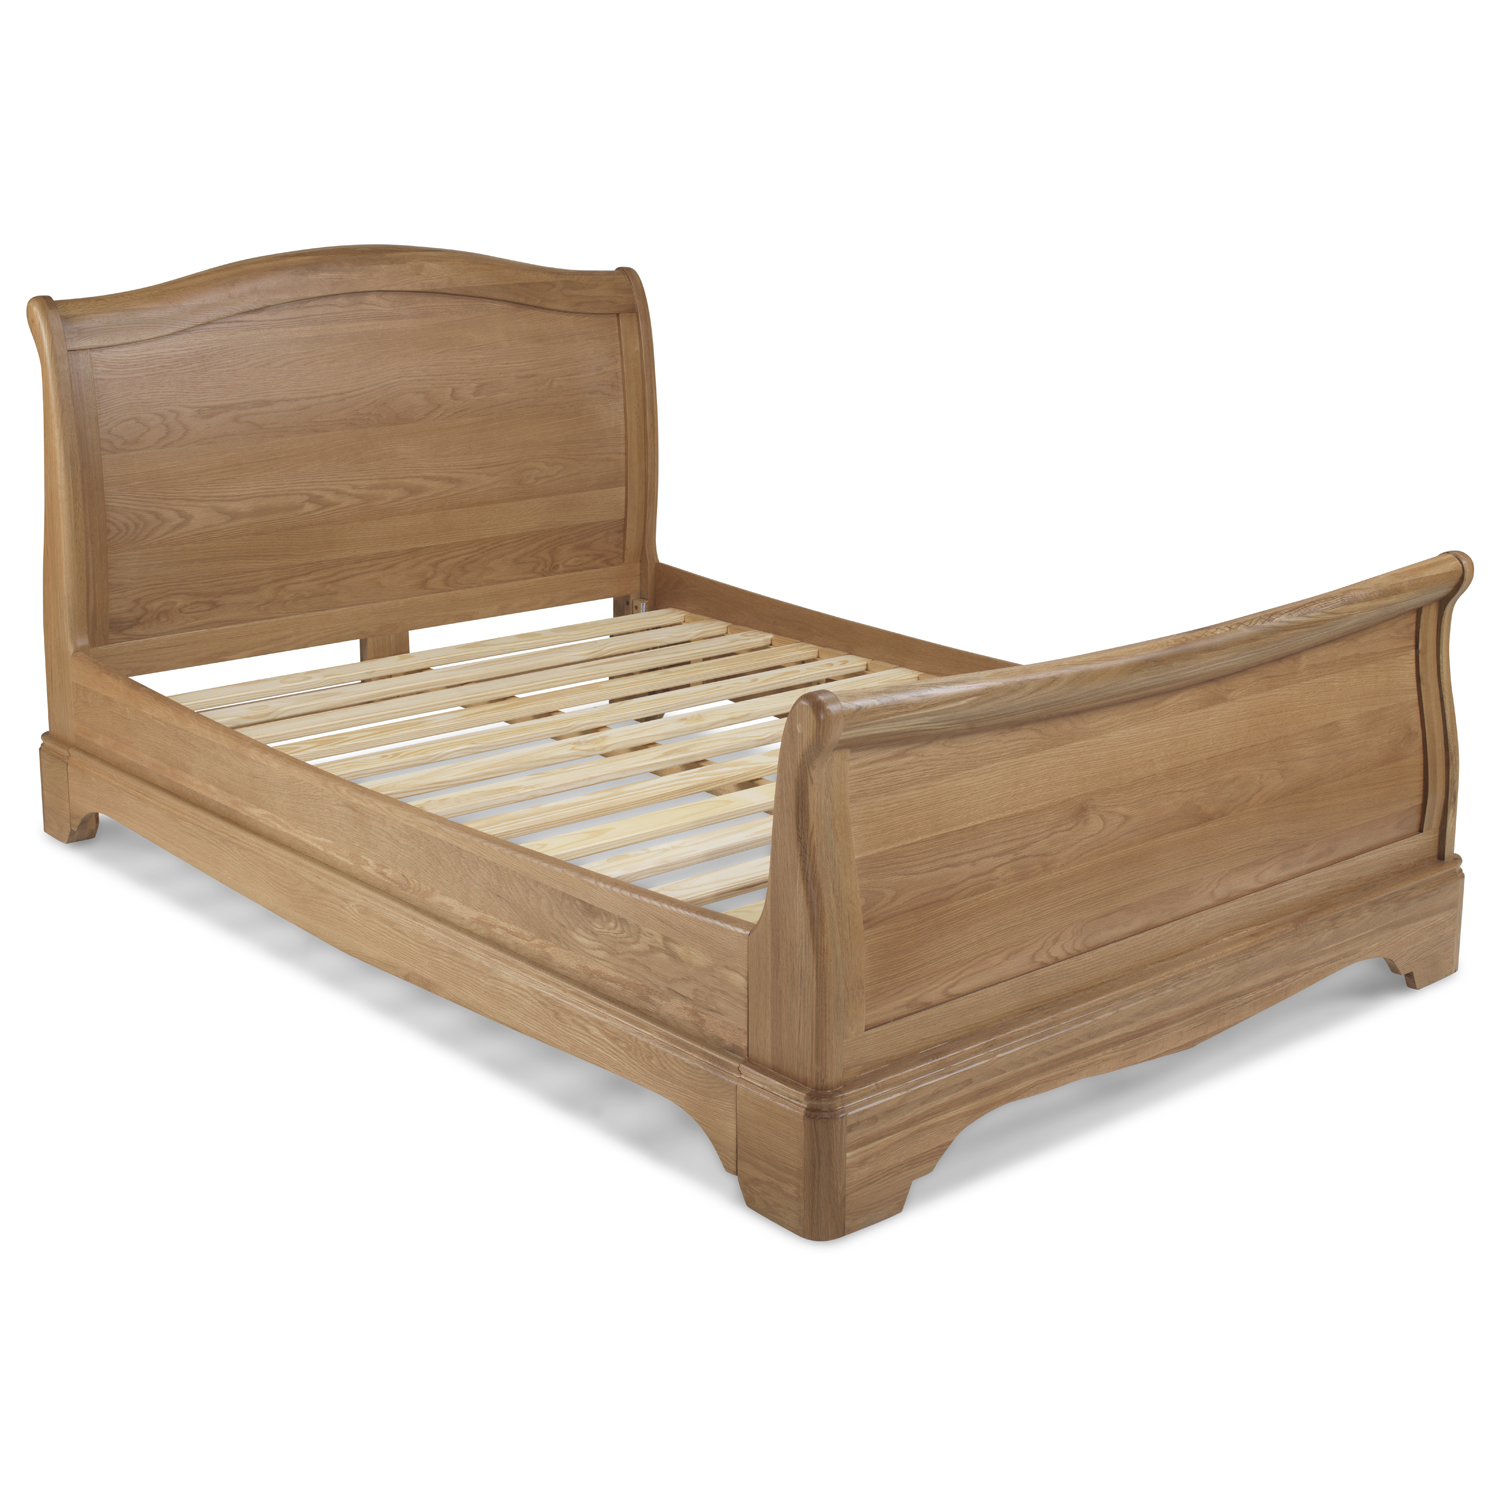 - Loraine Oak Bedroom King Size Bed 5Ft - Quercus Living